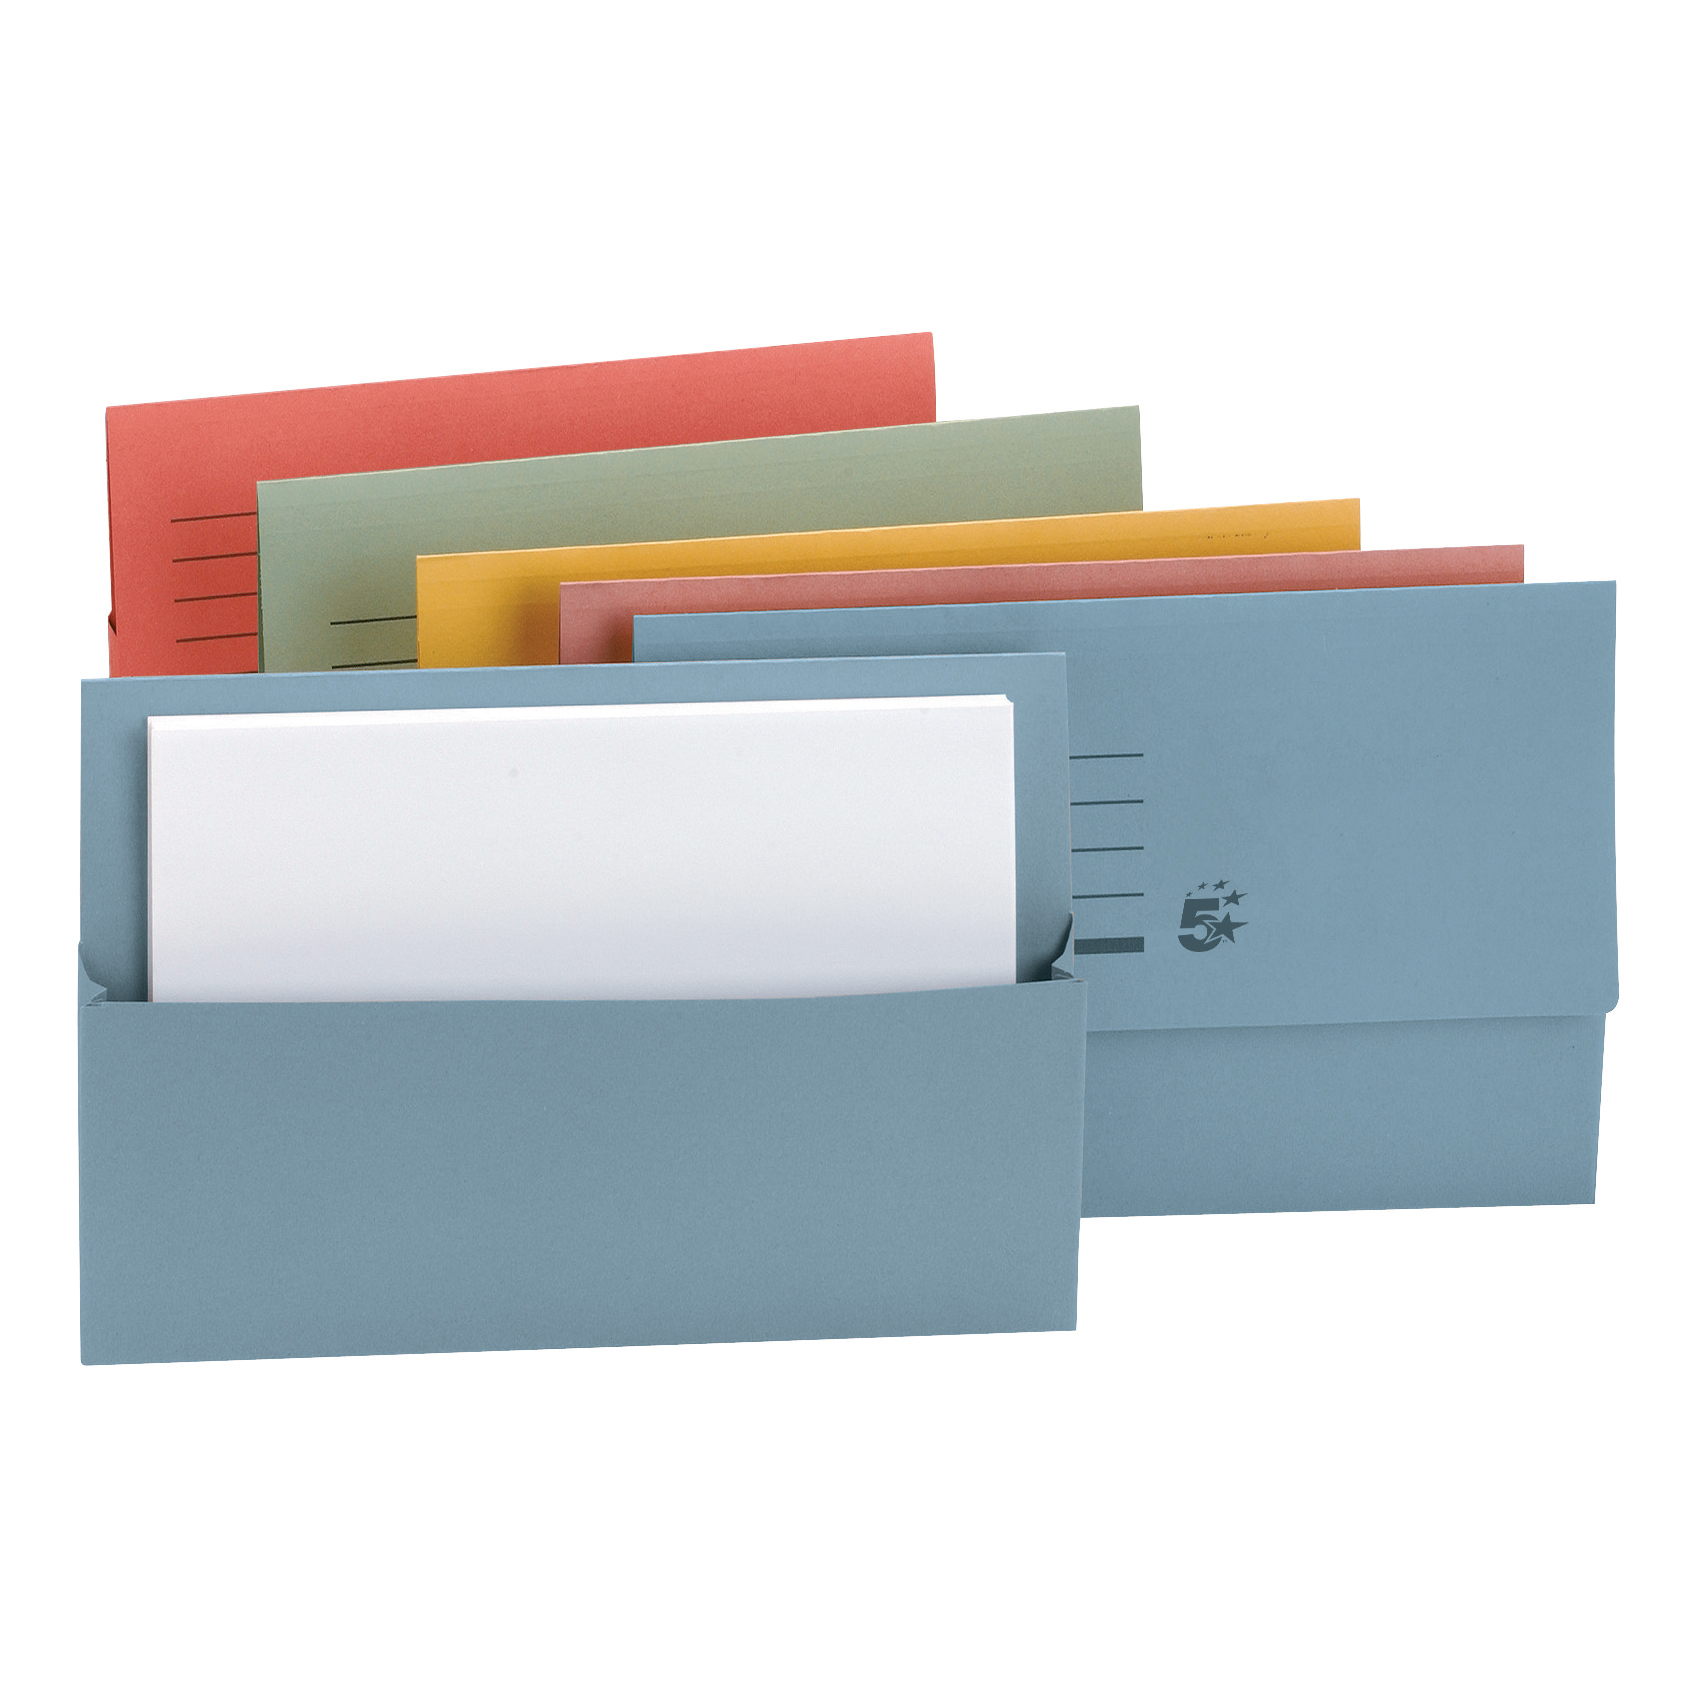 5 Star Office Document Wallet Half Flap 250gsm Recycled Capacity 32mm Foolscap Assorted Pack 50